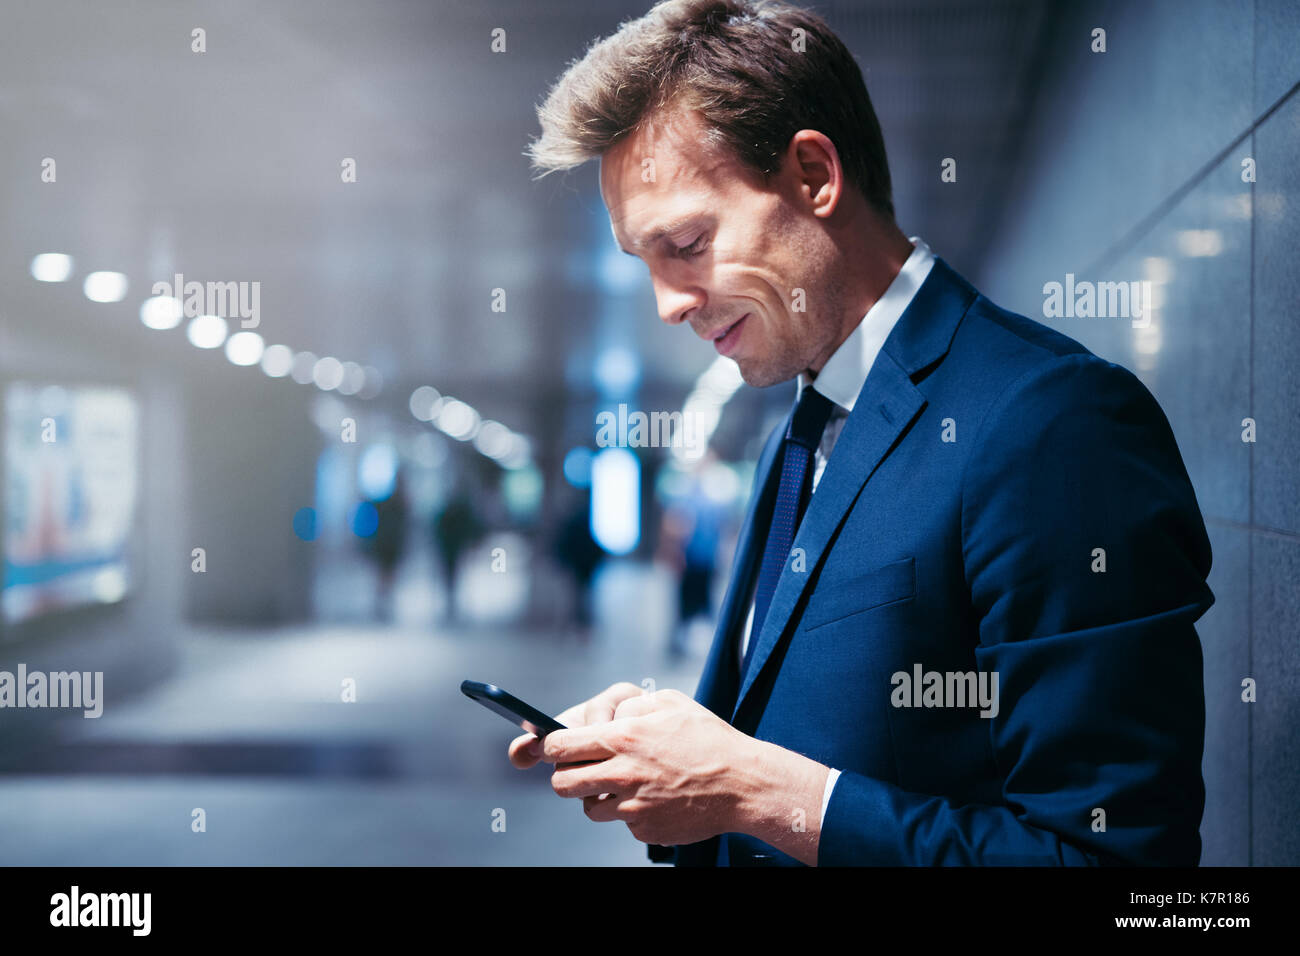 Smiling young businessman standing on a subway platform during his morning commute reading text messages on his cellphone - Stock Image